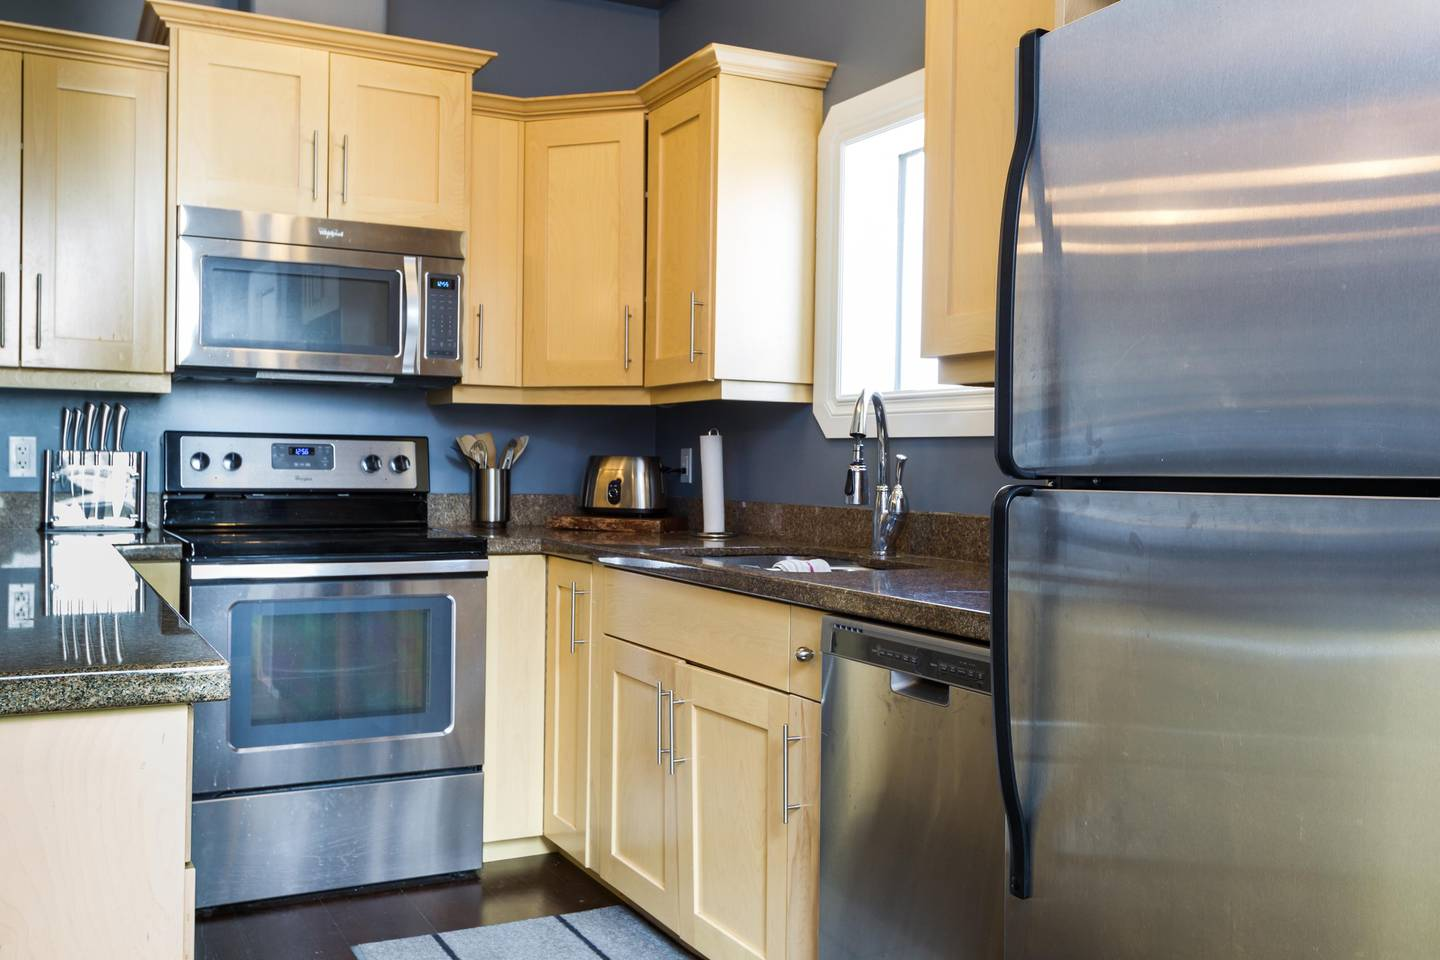 Apartment Luxury  2 Story Condo Near Rogers Place  Downtown photo 25966049